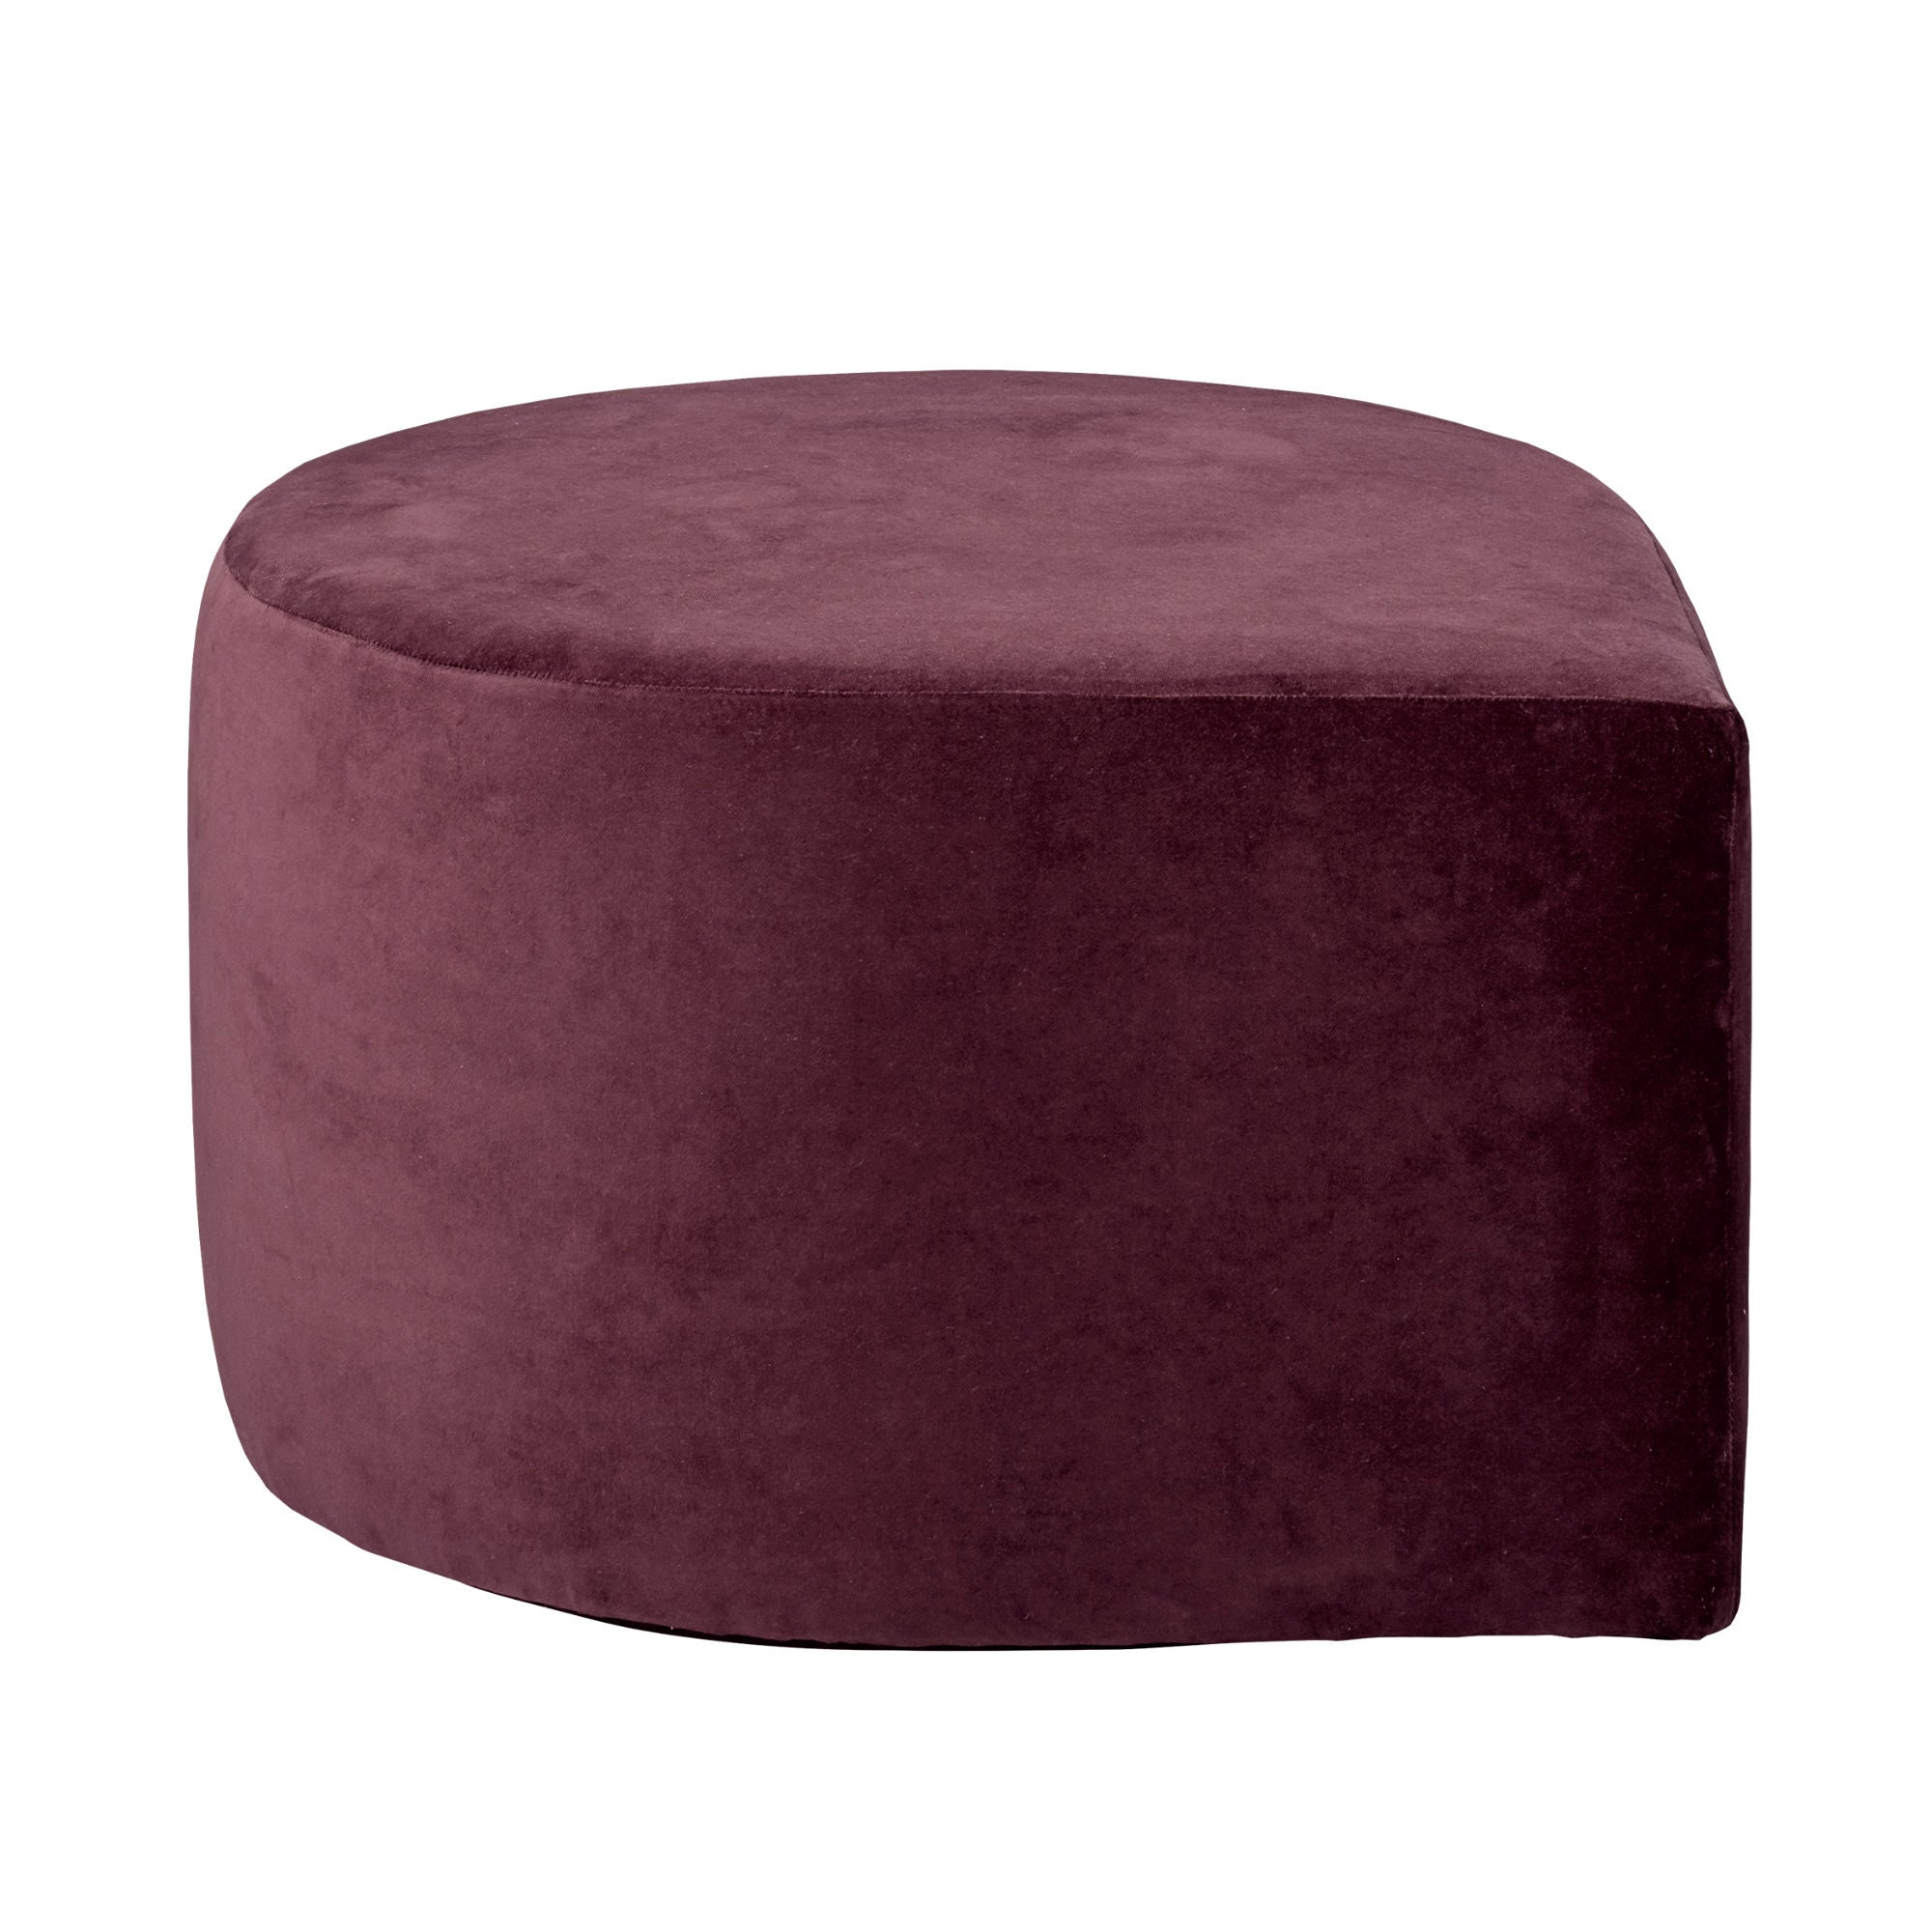 AYTM Stilla Pouf , Bordeaux